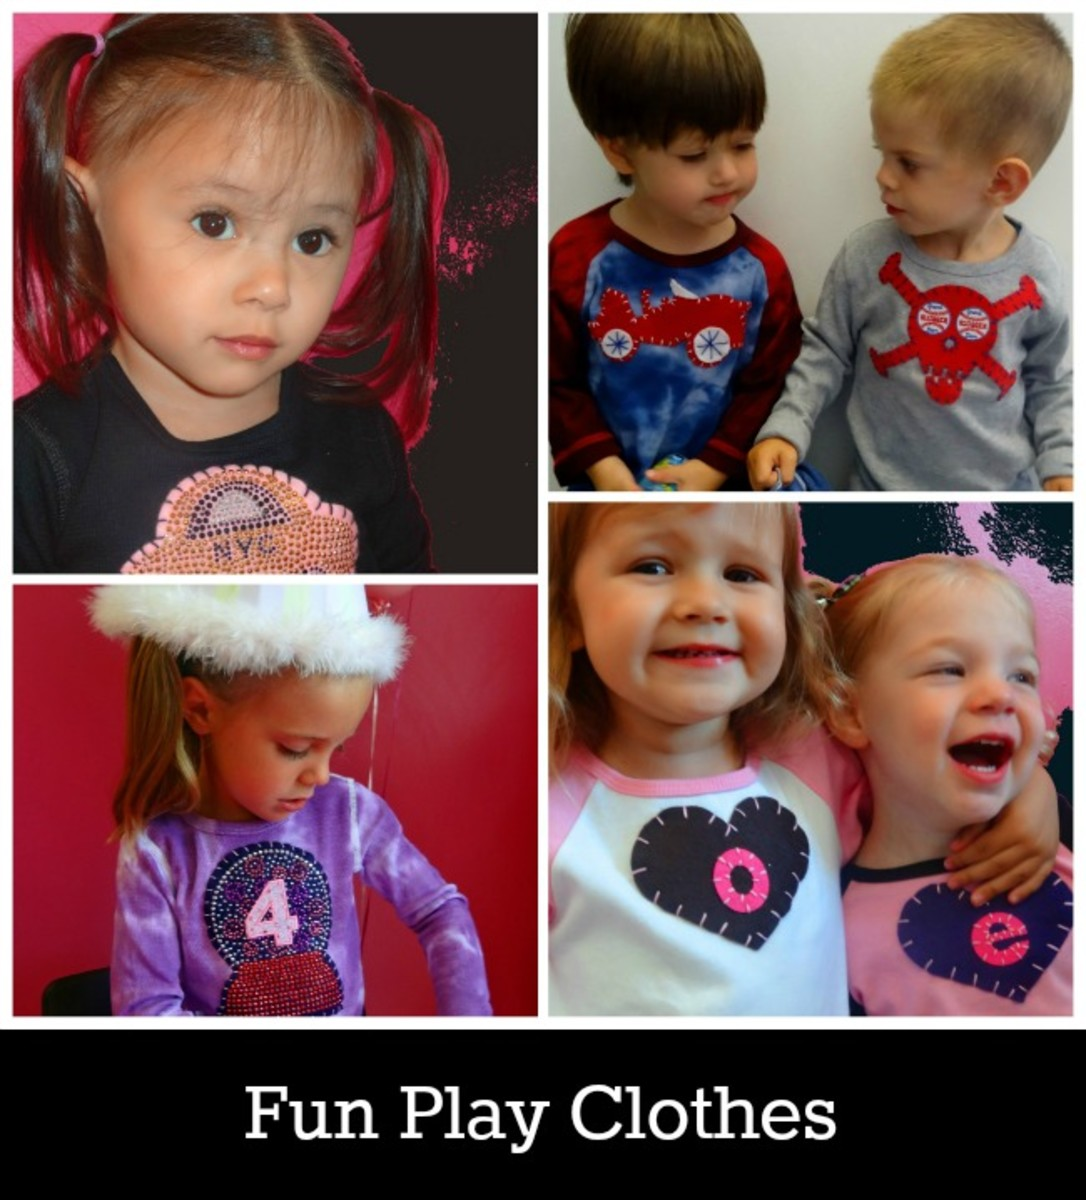 FunPlayClothes